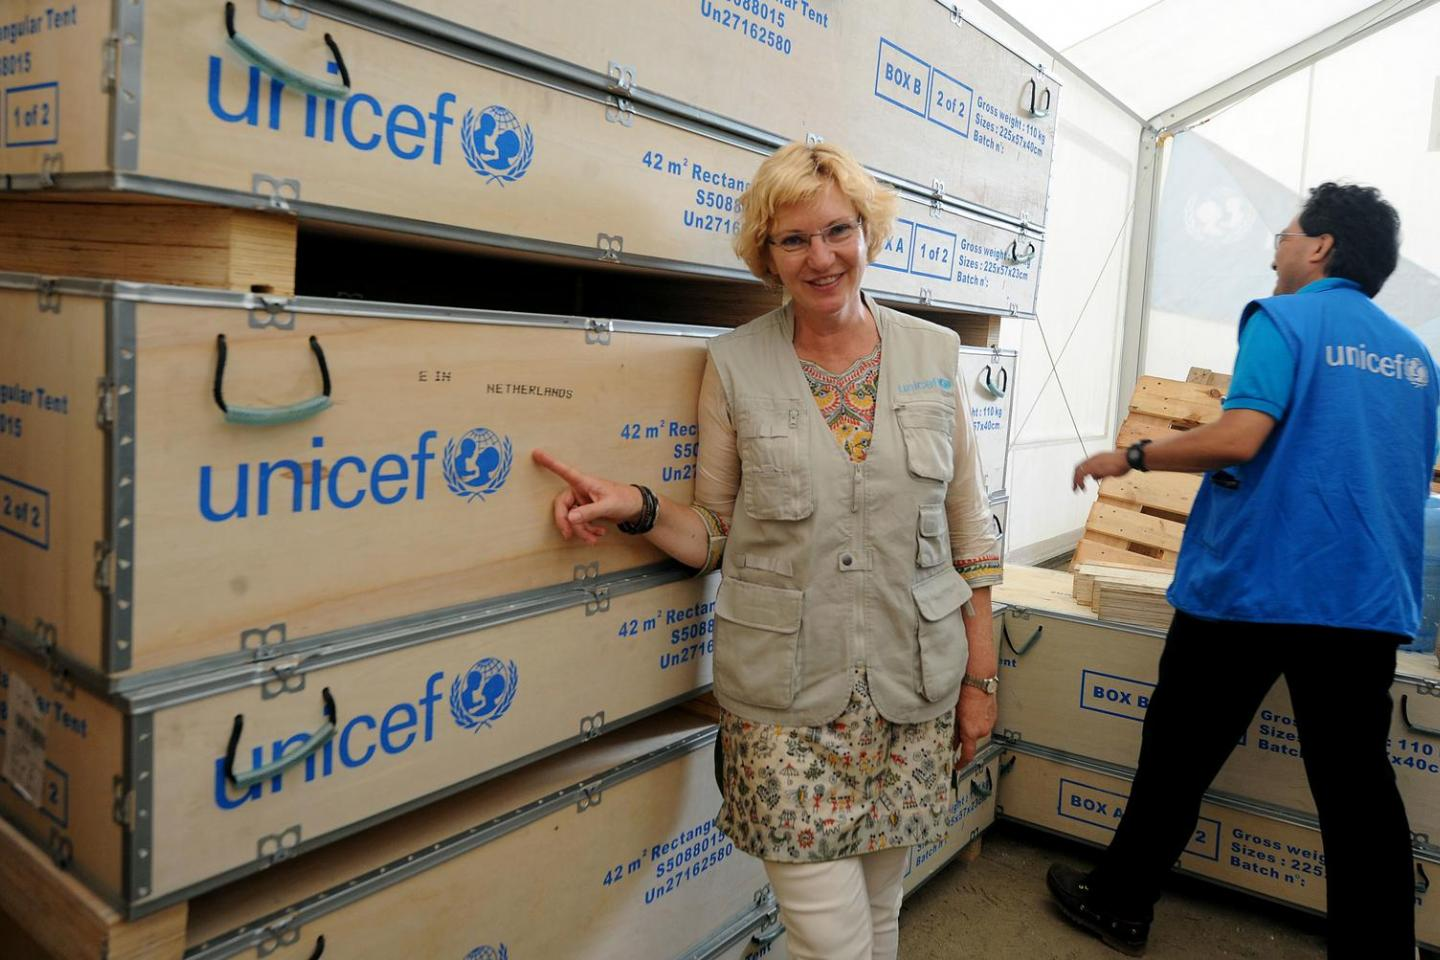 UNICEF ROSA Regional Director Karin Hulshof in fron of the boxes with tenst at the UNICEF Warehouse at the Tribhuvan International Airport. UNICEF Nepal Representative Tomoo Hozumi is also in the frame.